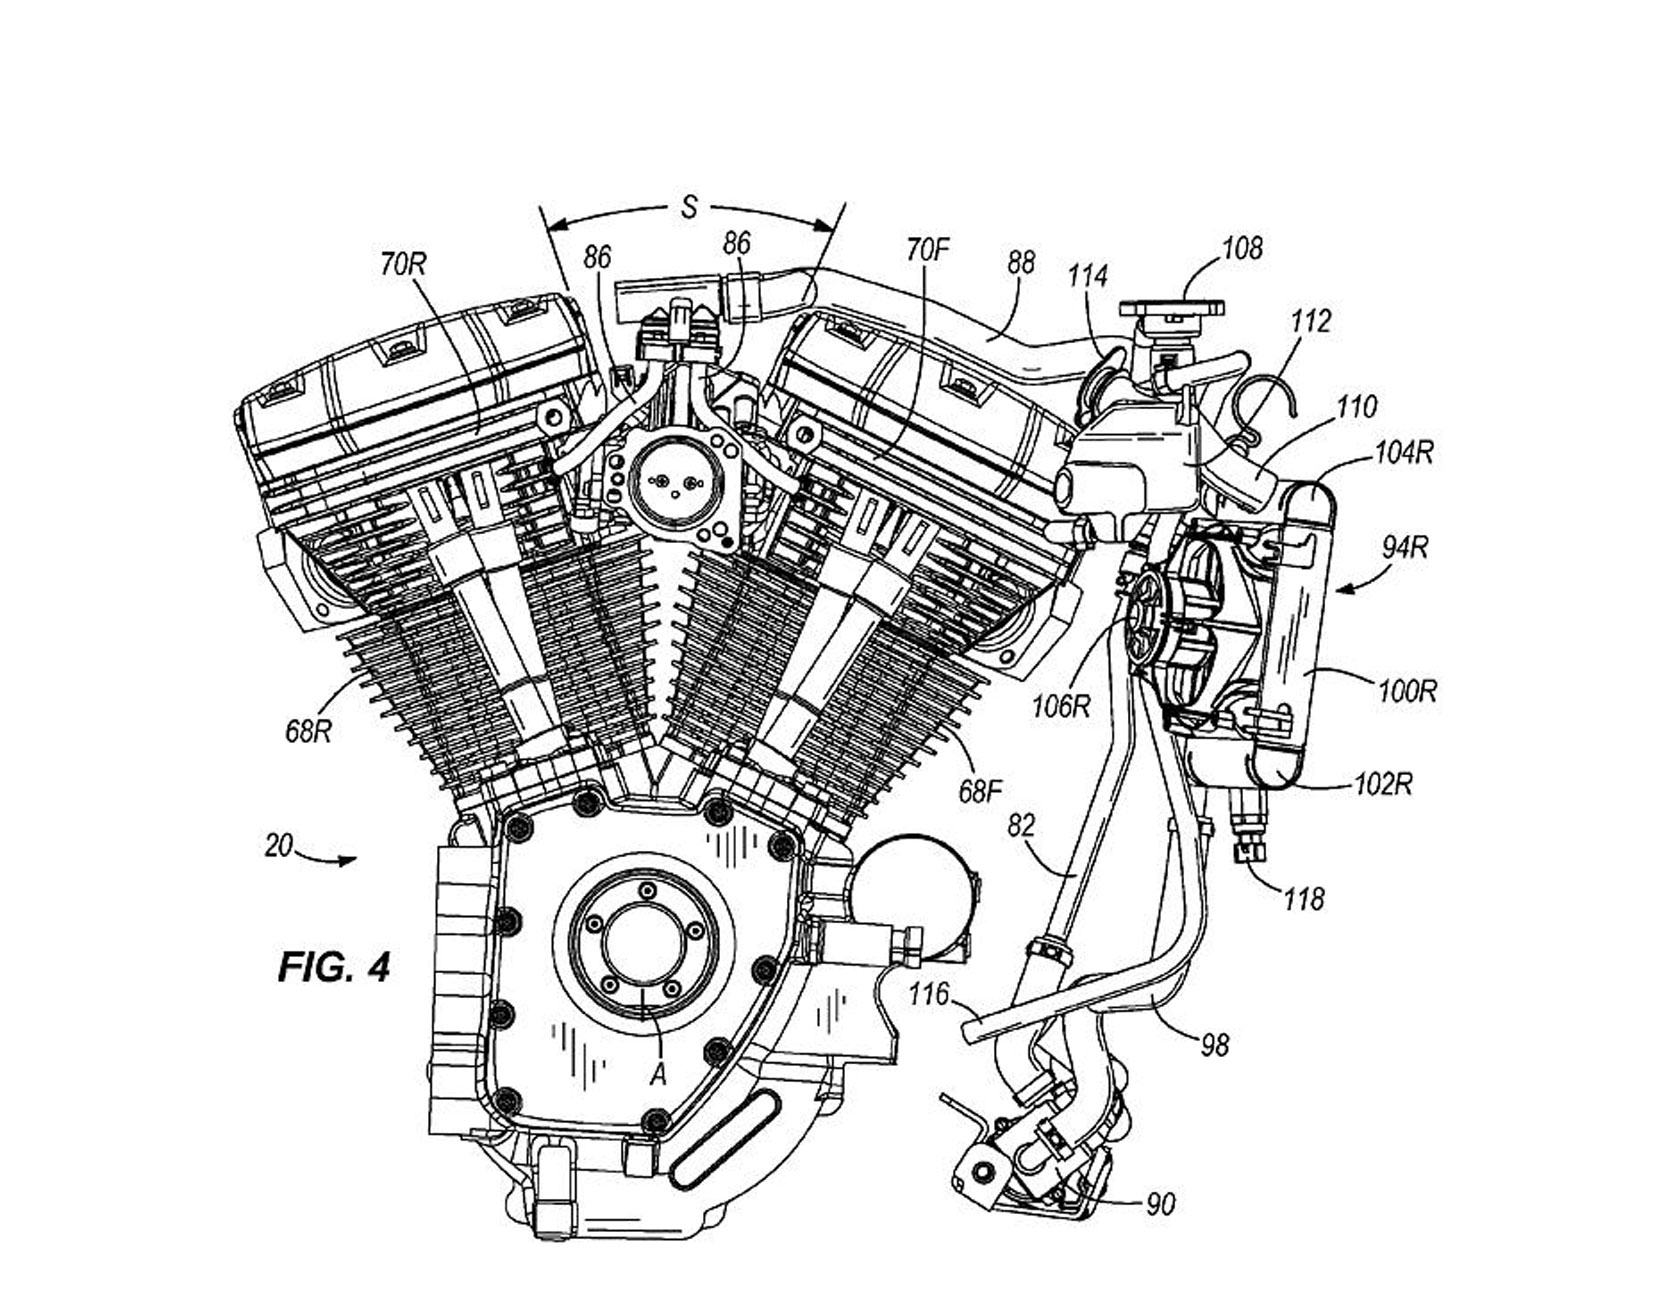 2011 HarleyDavidson Water Cooled    Engine    US Patent  concept  spy shots